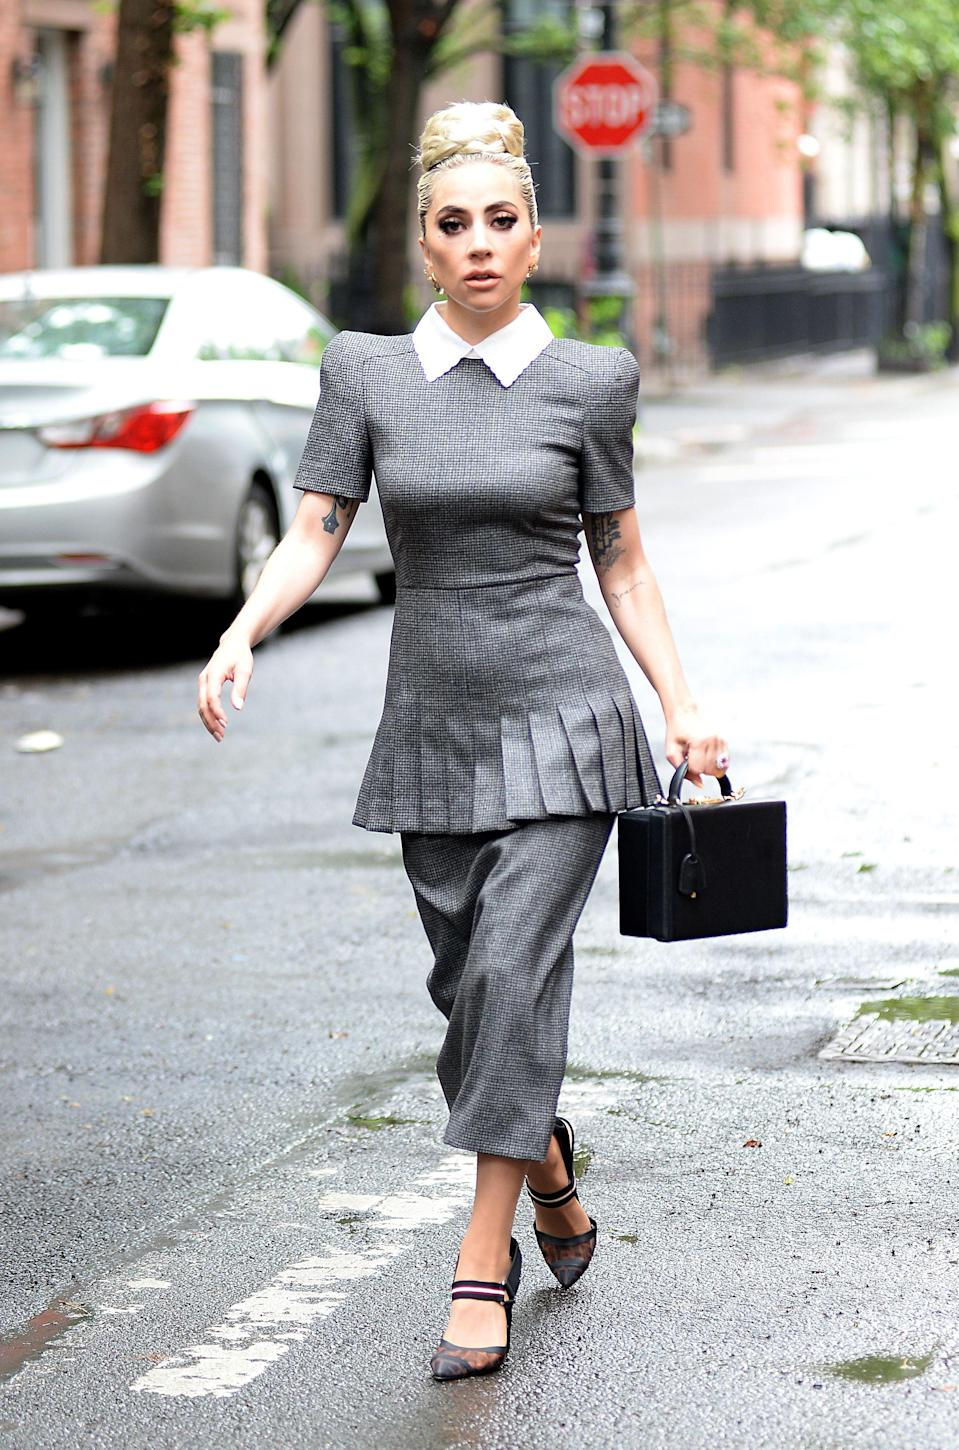 <p>She returned to sophistication that day, providing us with some quite genuine job interview fashion inspo. [Photo: Rex] </p>